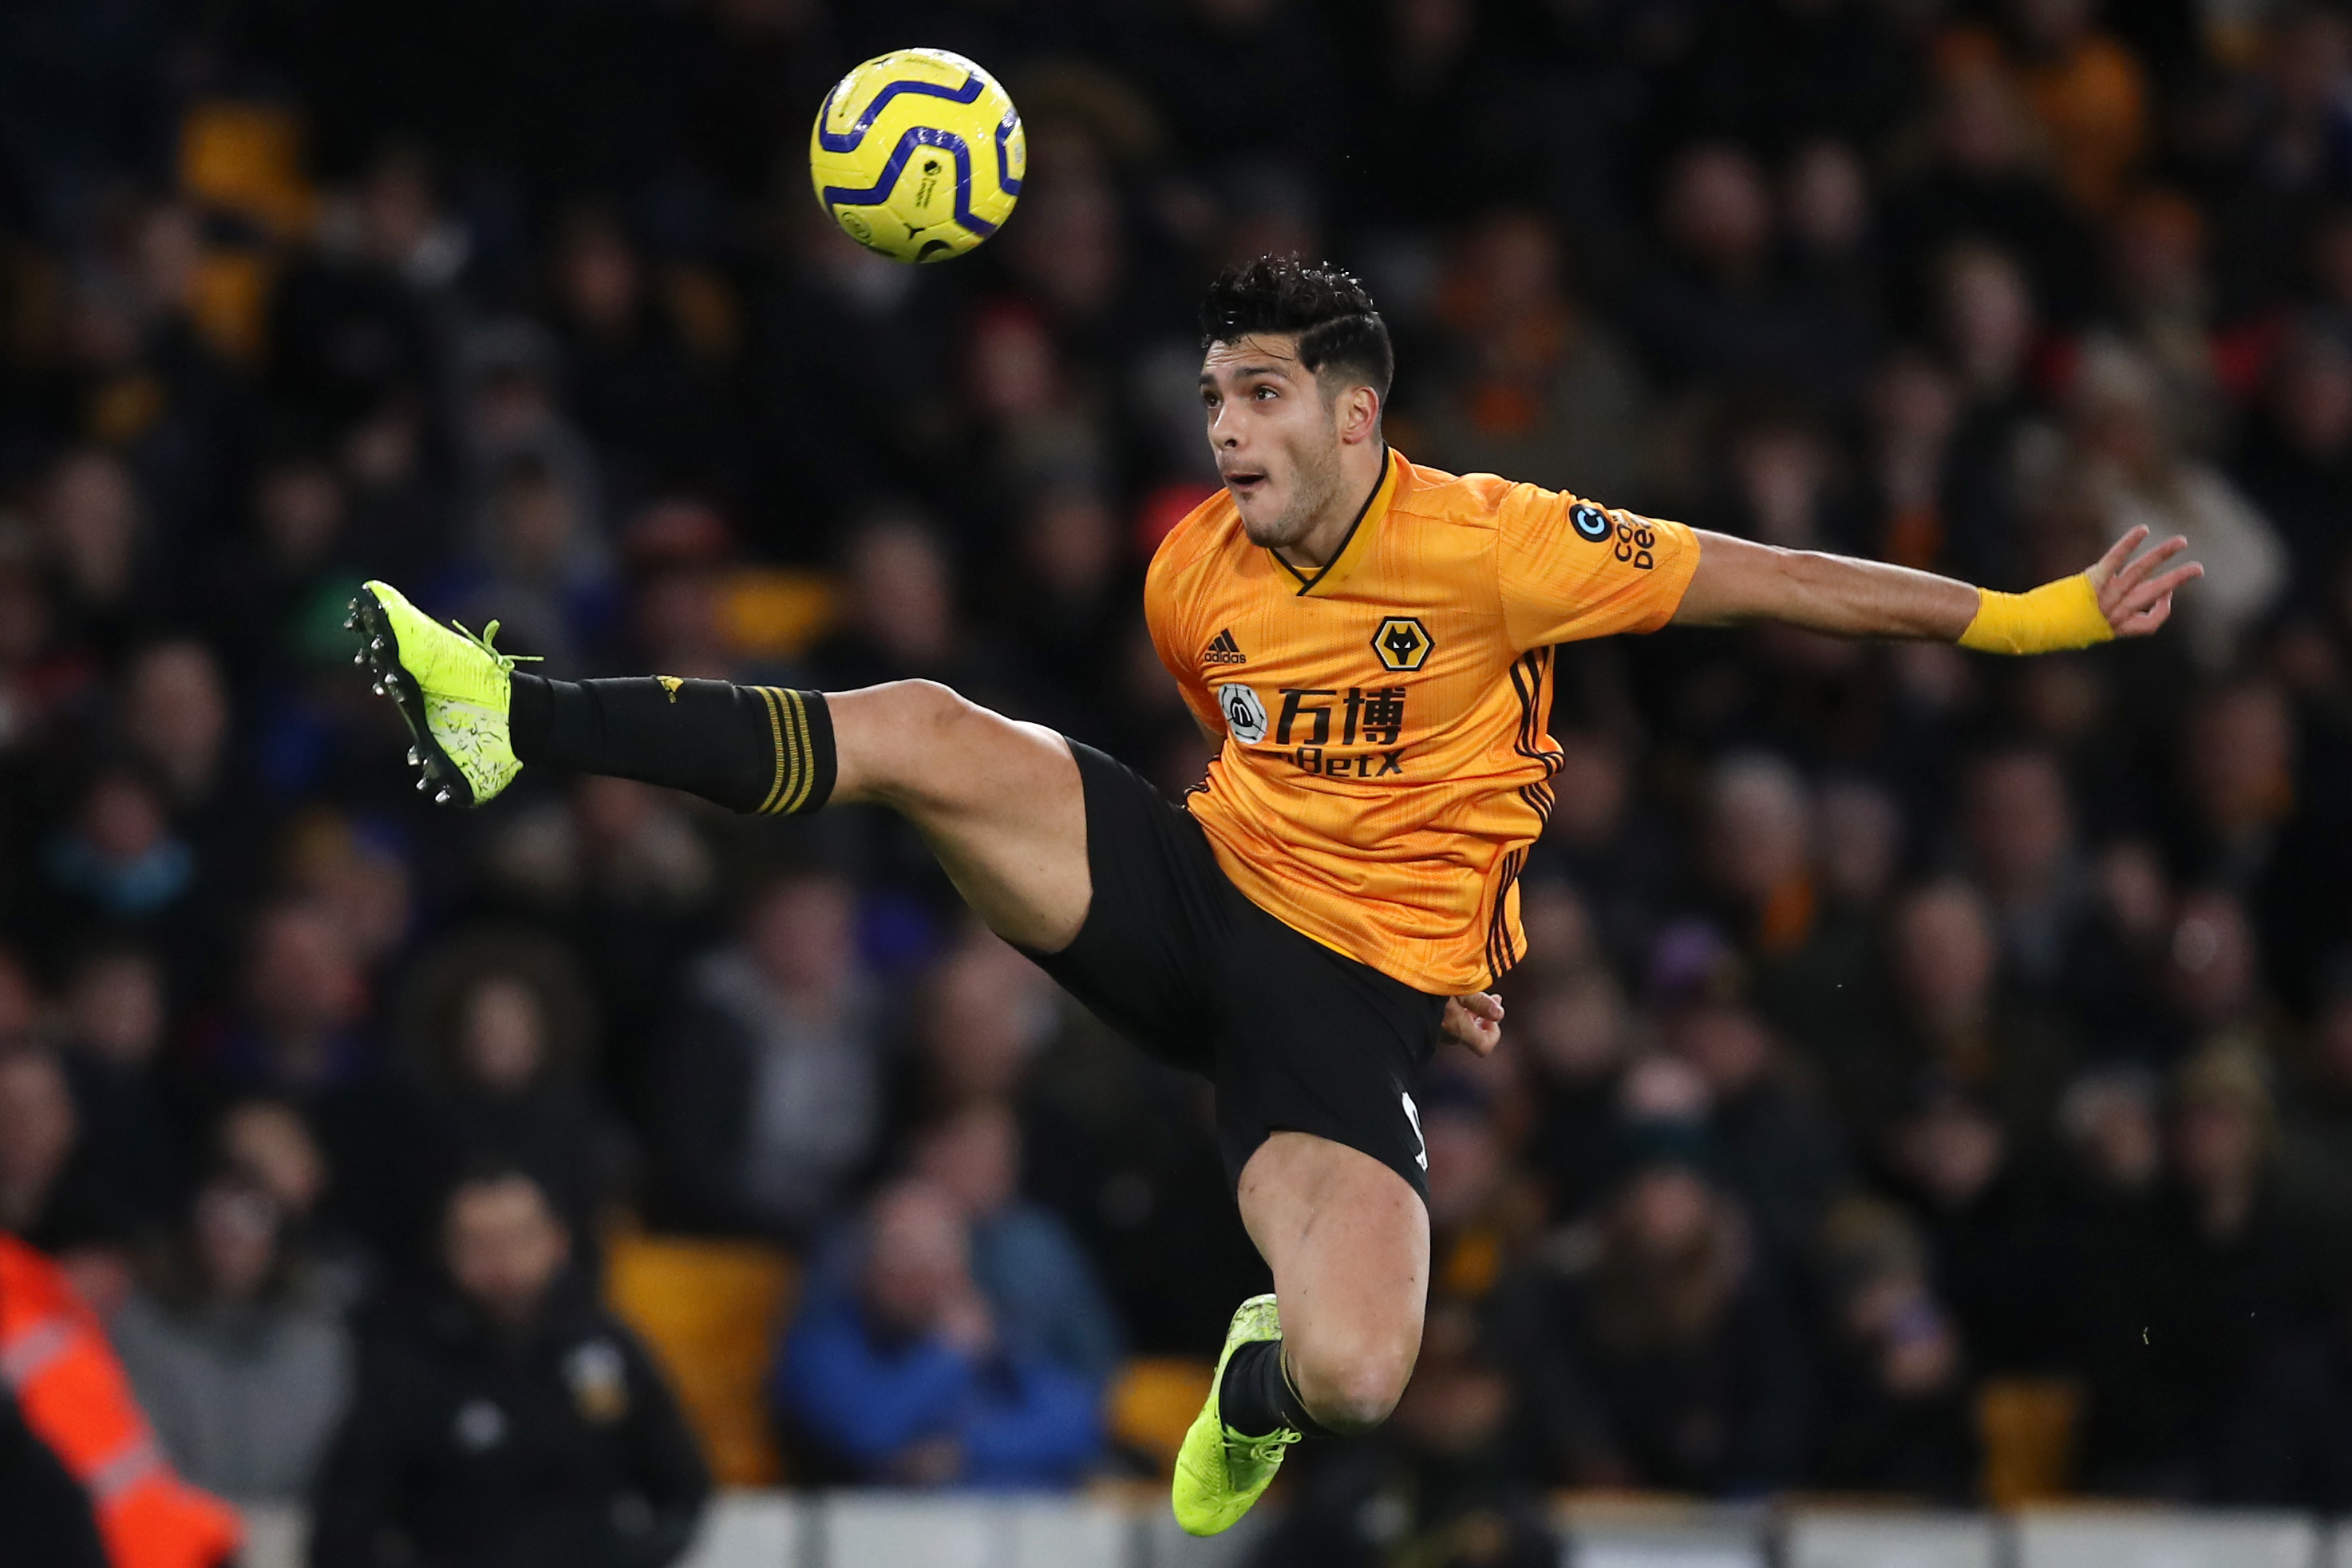 No Raul Jimenez for Wolves (Photo by Marc Atkins/Getty Images)